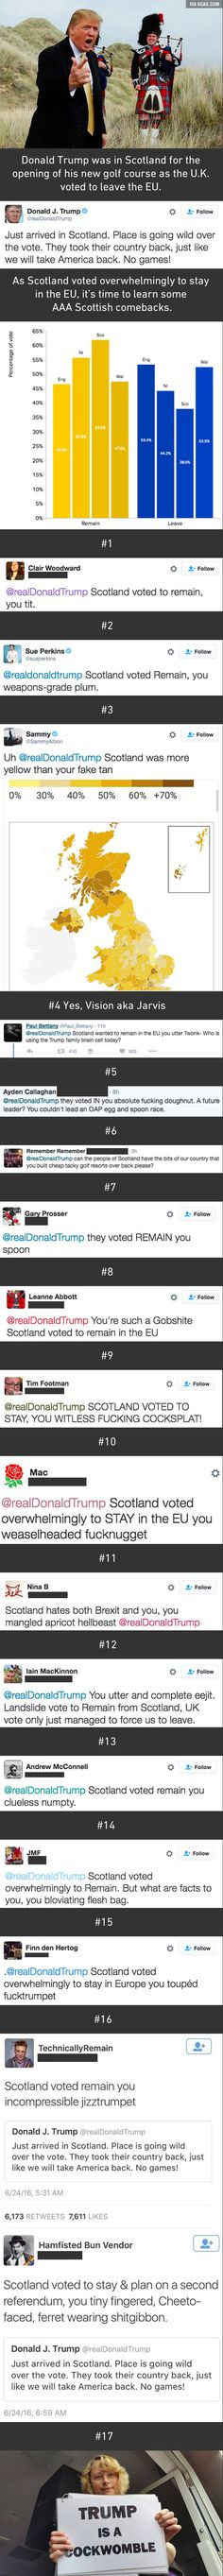 Scots Shower Trump With Glorious Scottish Insults After His Brexit Tweet